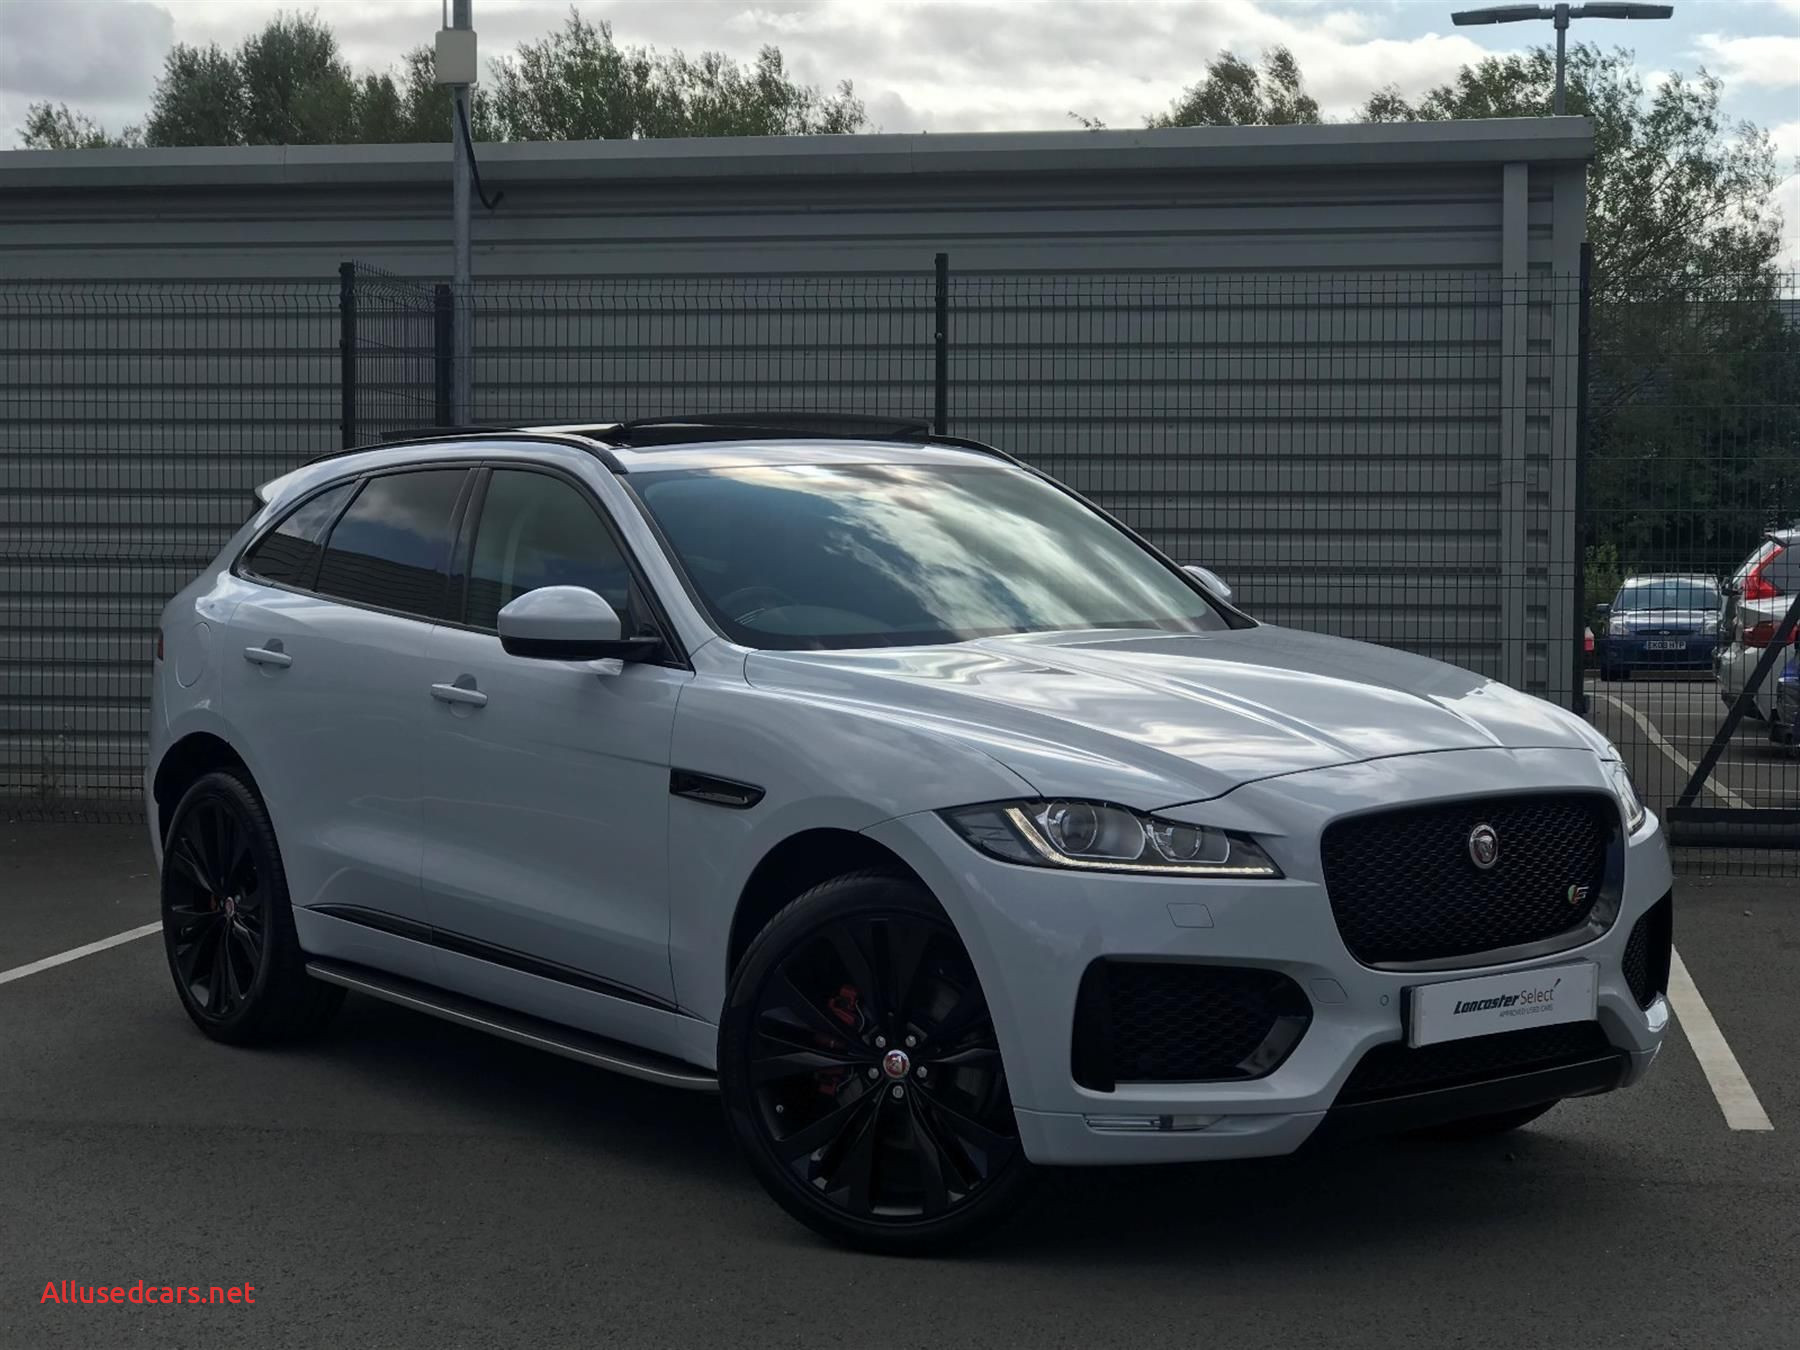 Used Audi Lovely Used 2019 Jaguar F Pace 3 0d V6 S 5dr Auto Awd for Sale In